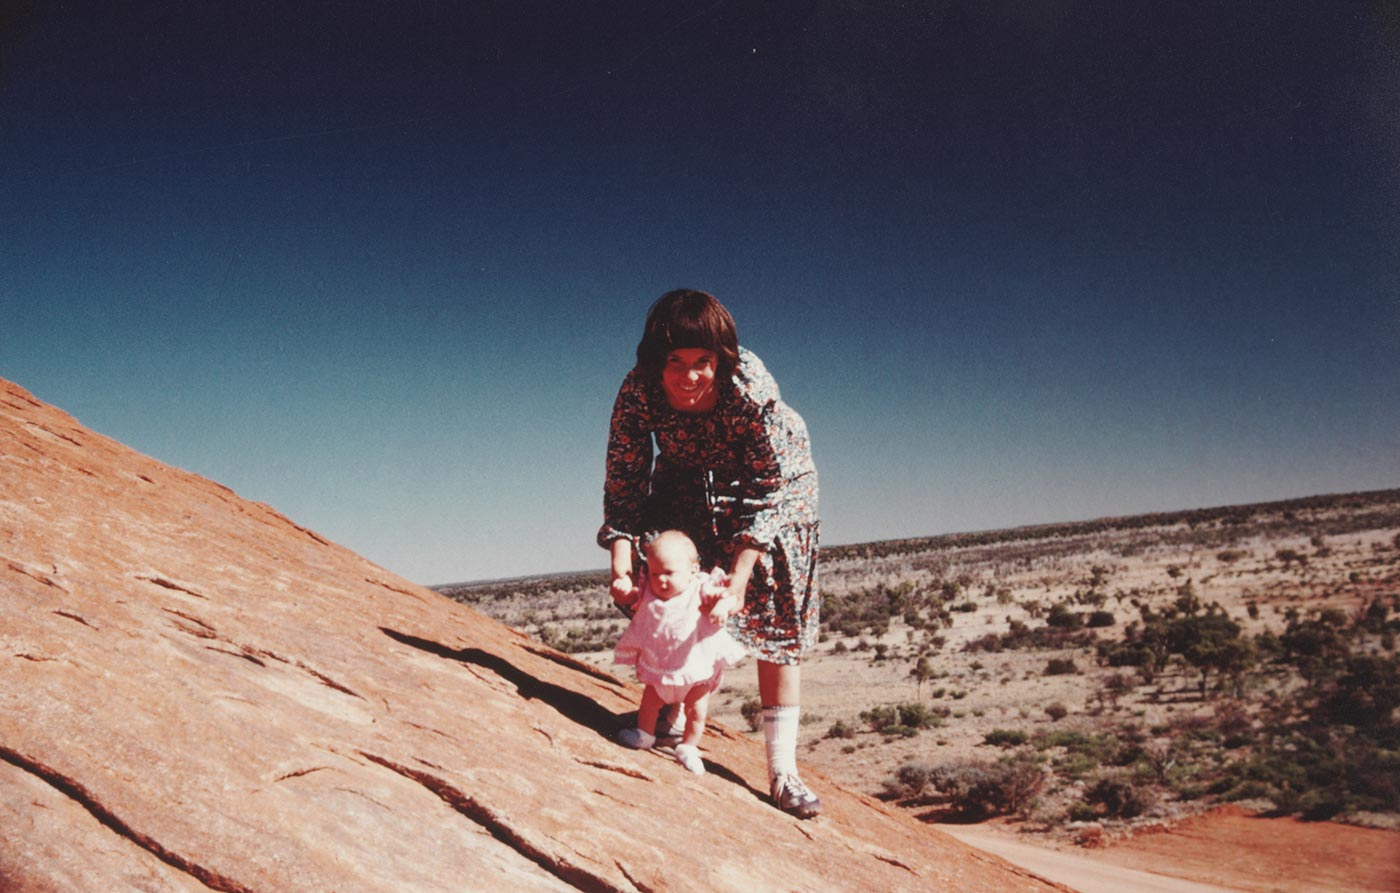 A mother with her daughter poses for the camera while standing on a rock slope in a vast rugged terrain.